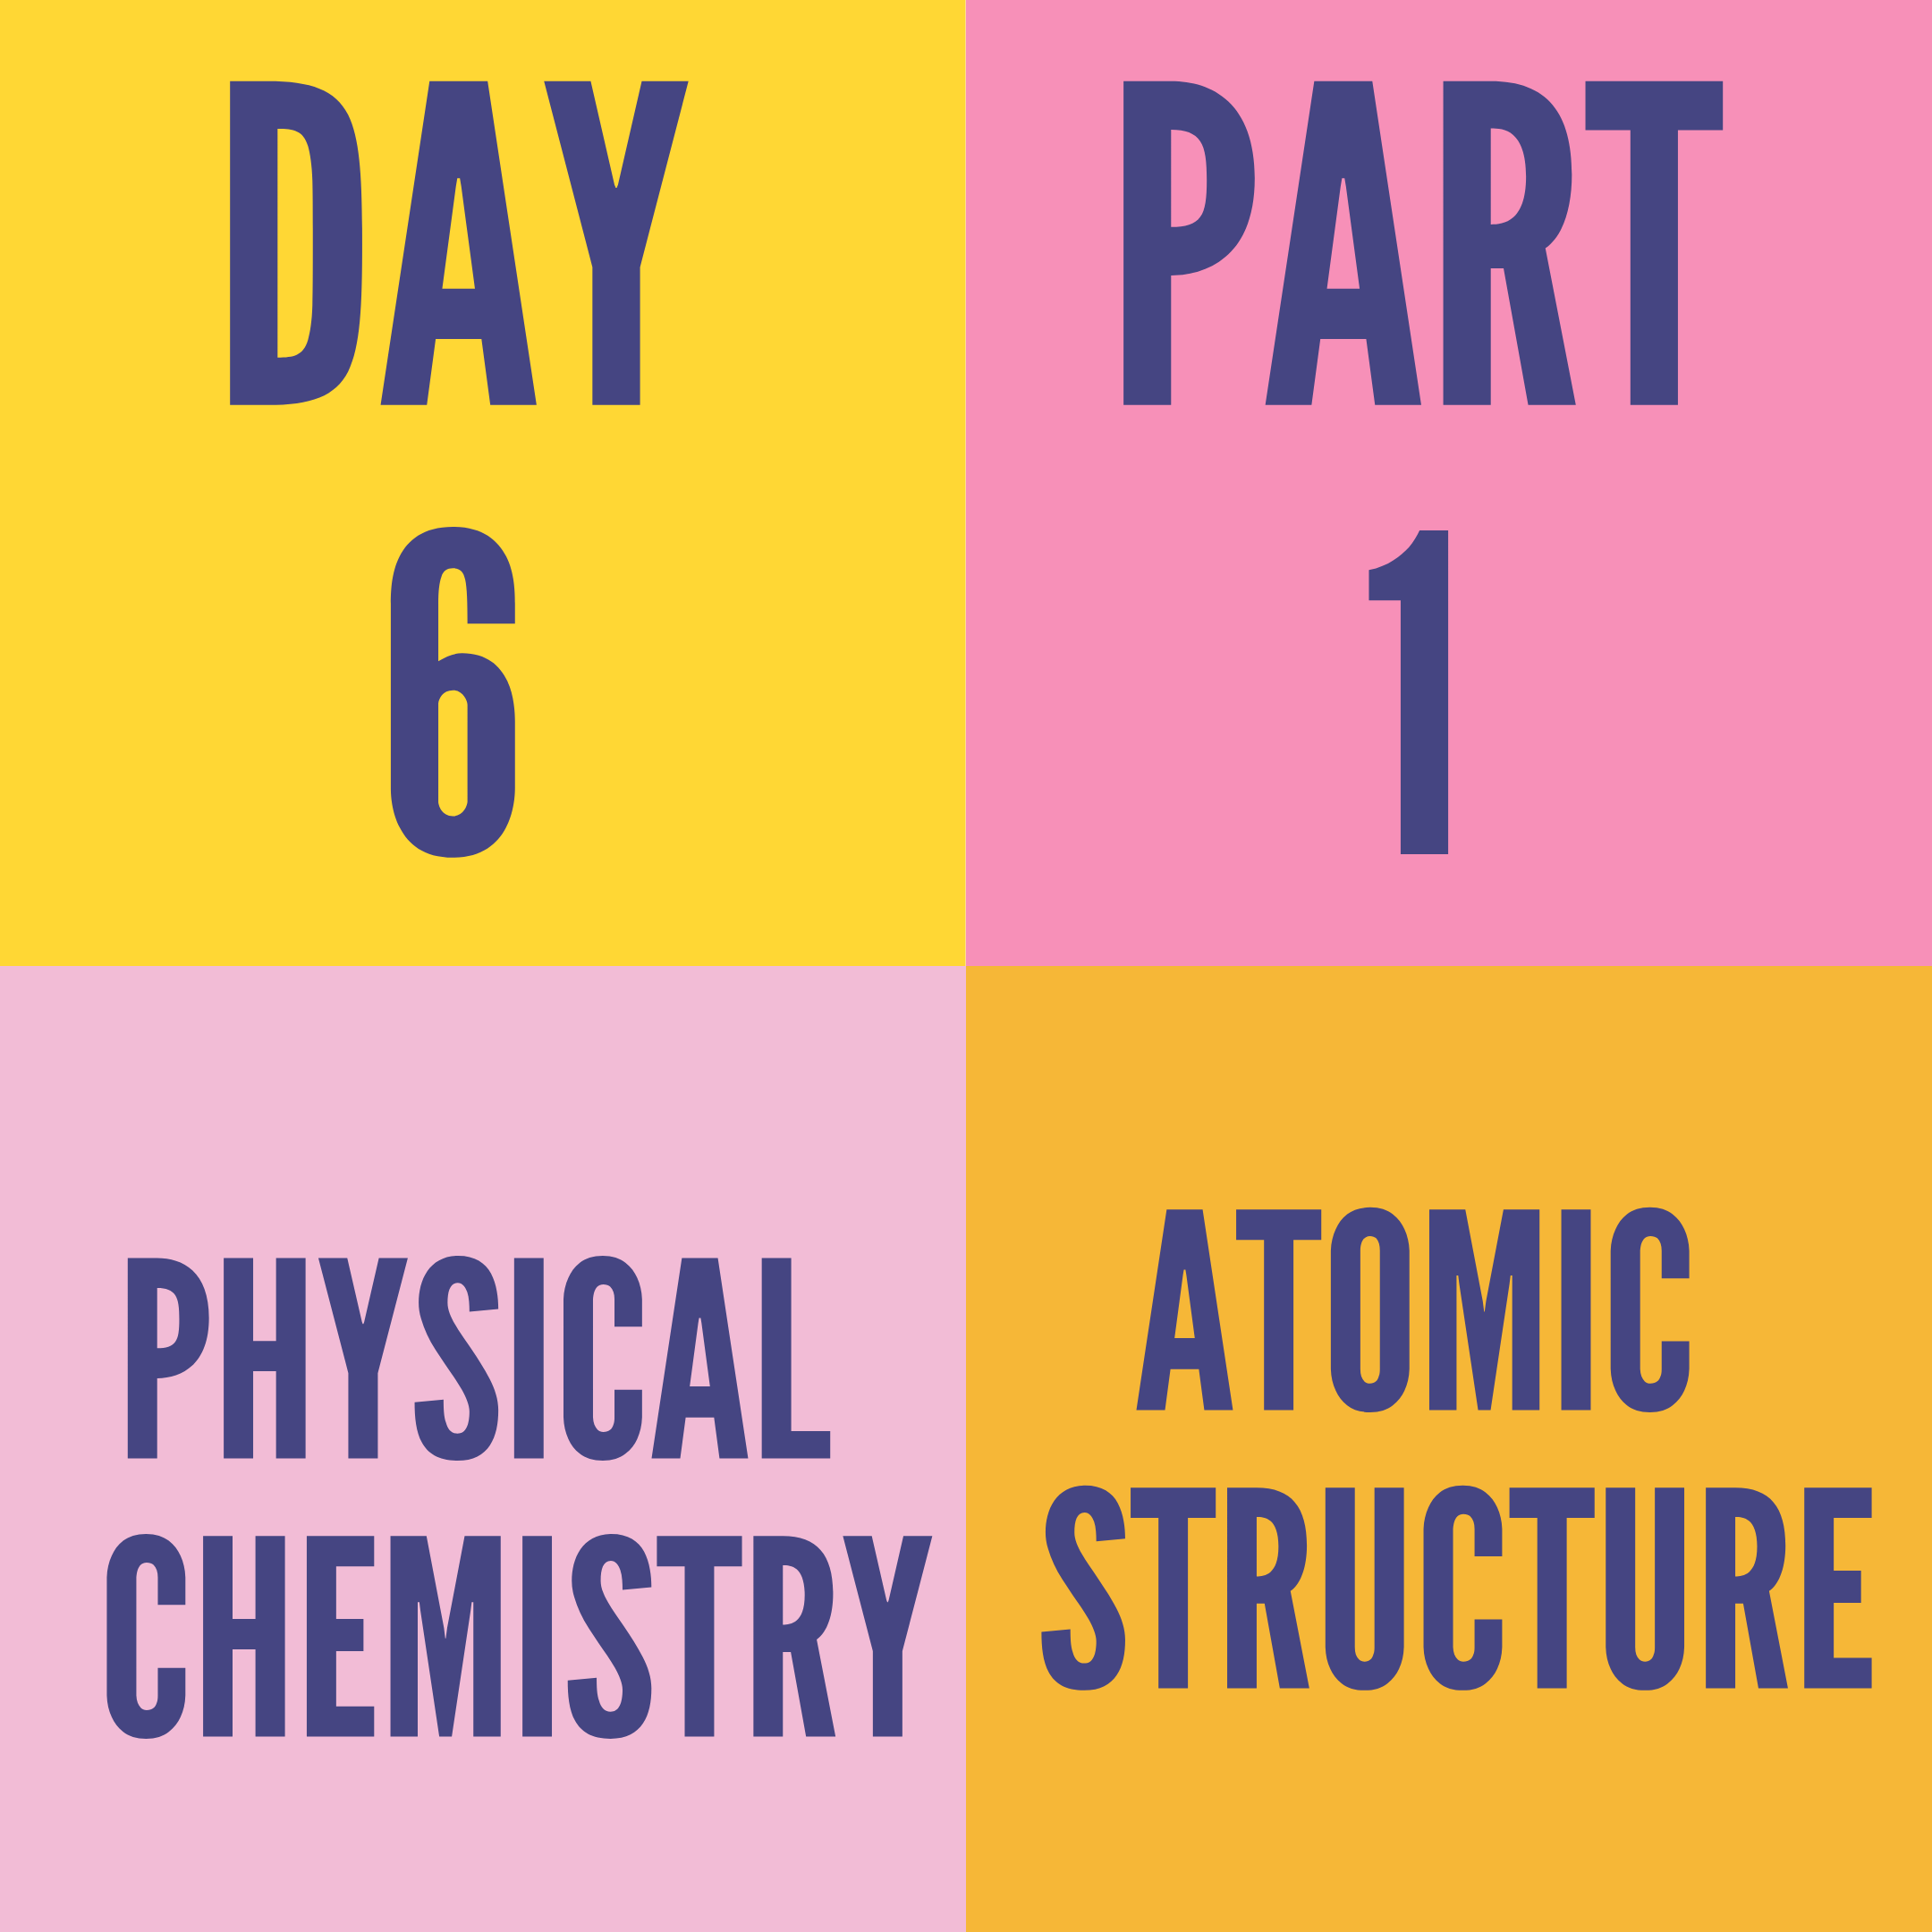 DAY-6 PART-1 ATOMIC STRUCTURE